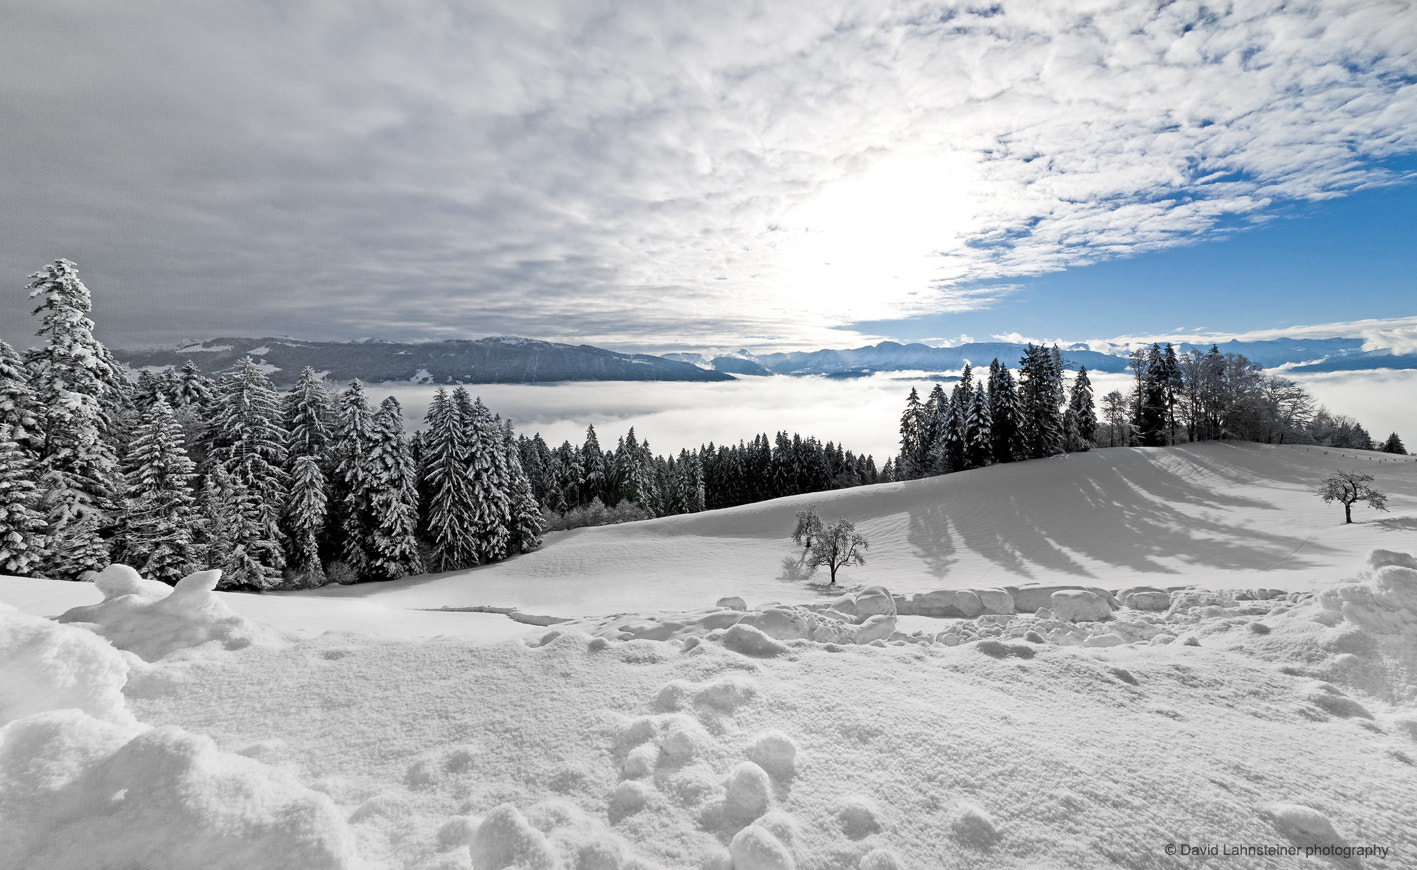 Photograph Winterlandscape by David Lahnsteiner on 500px